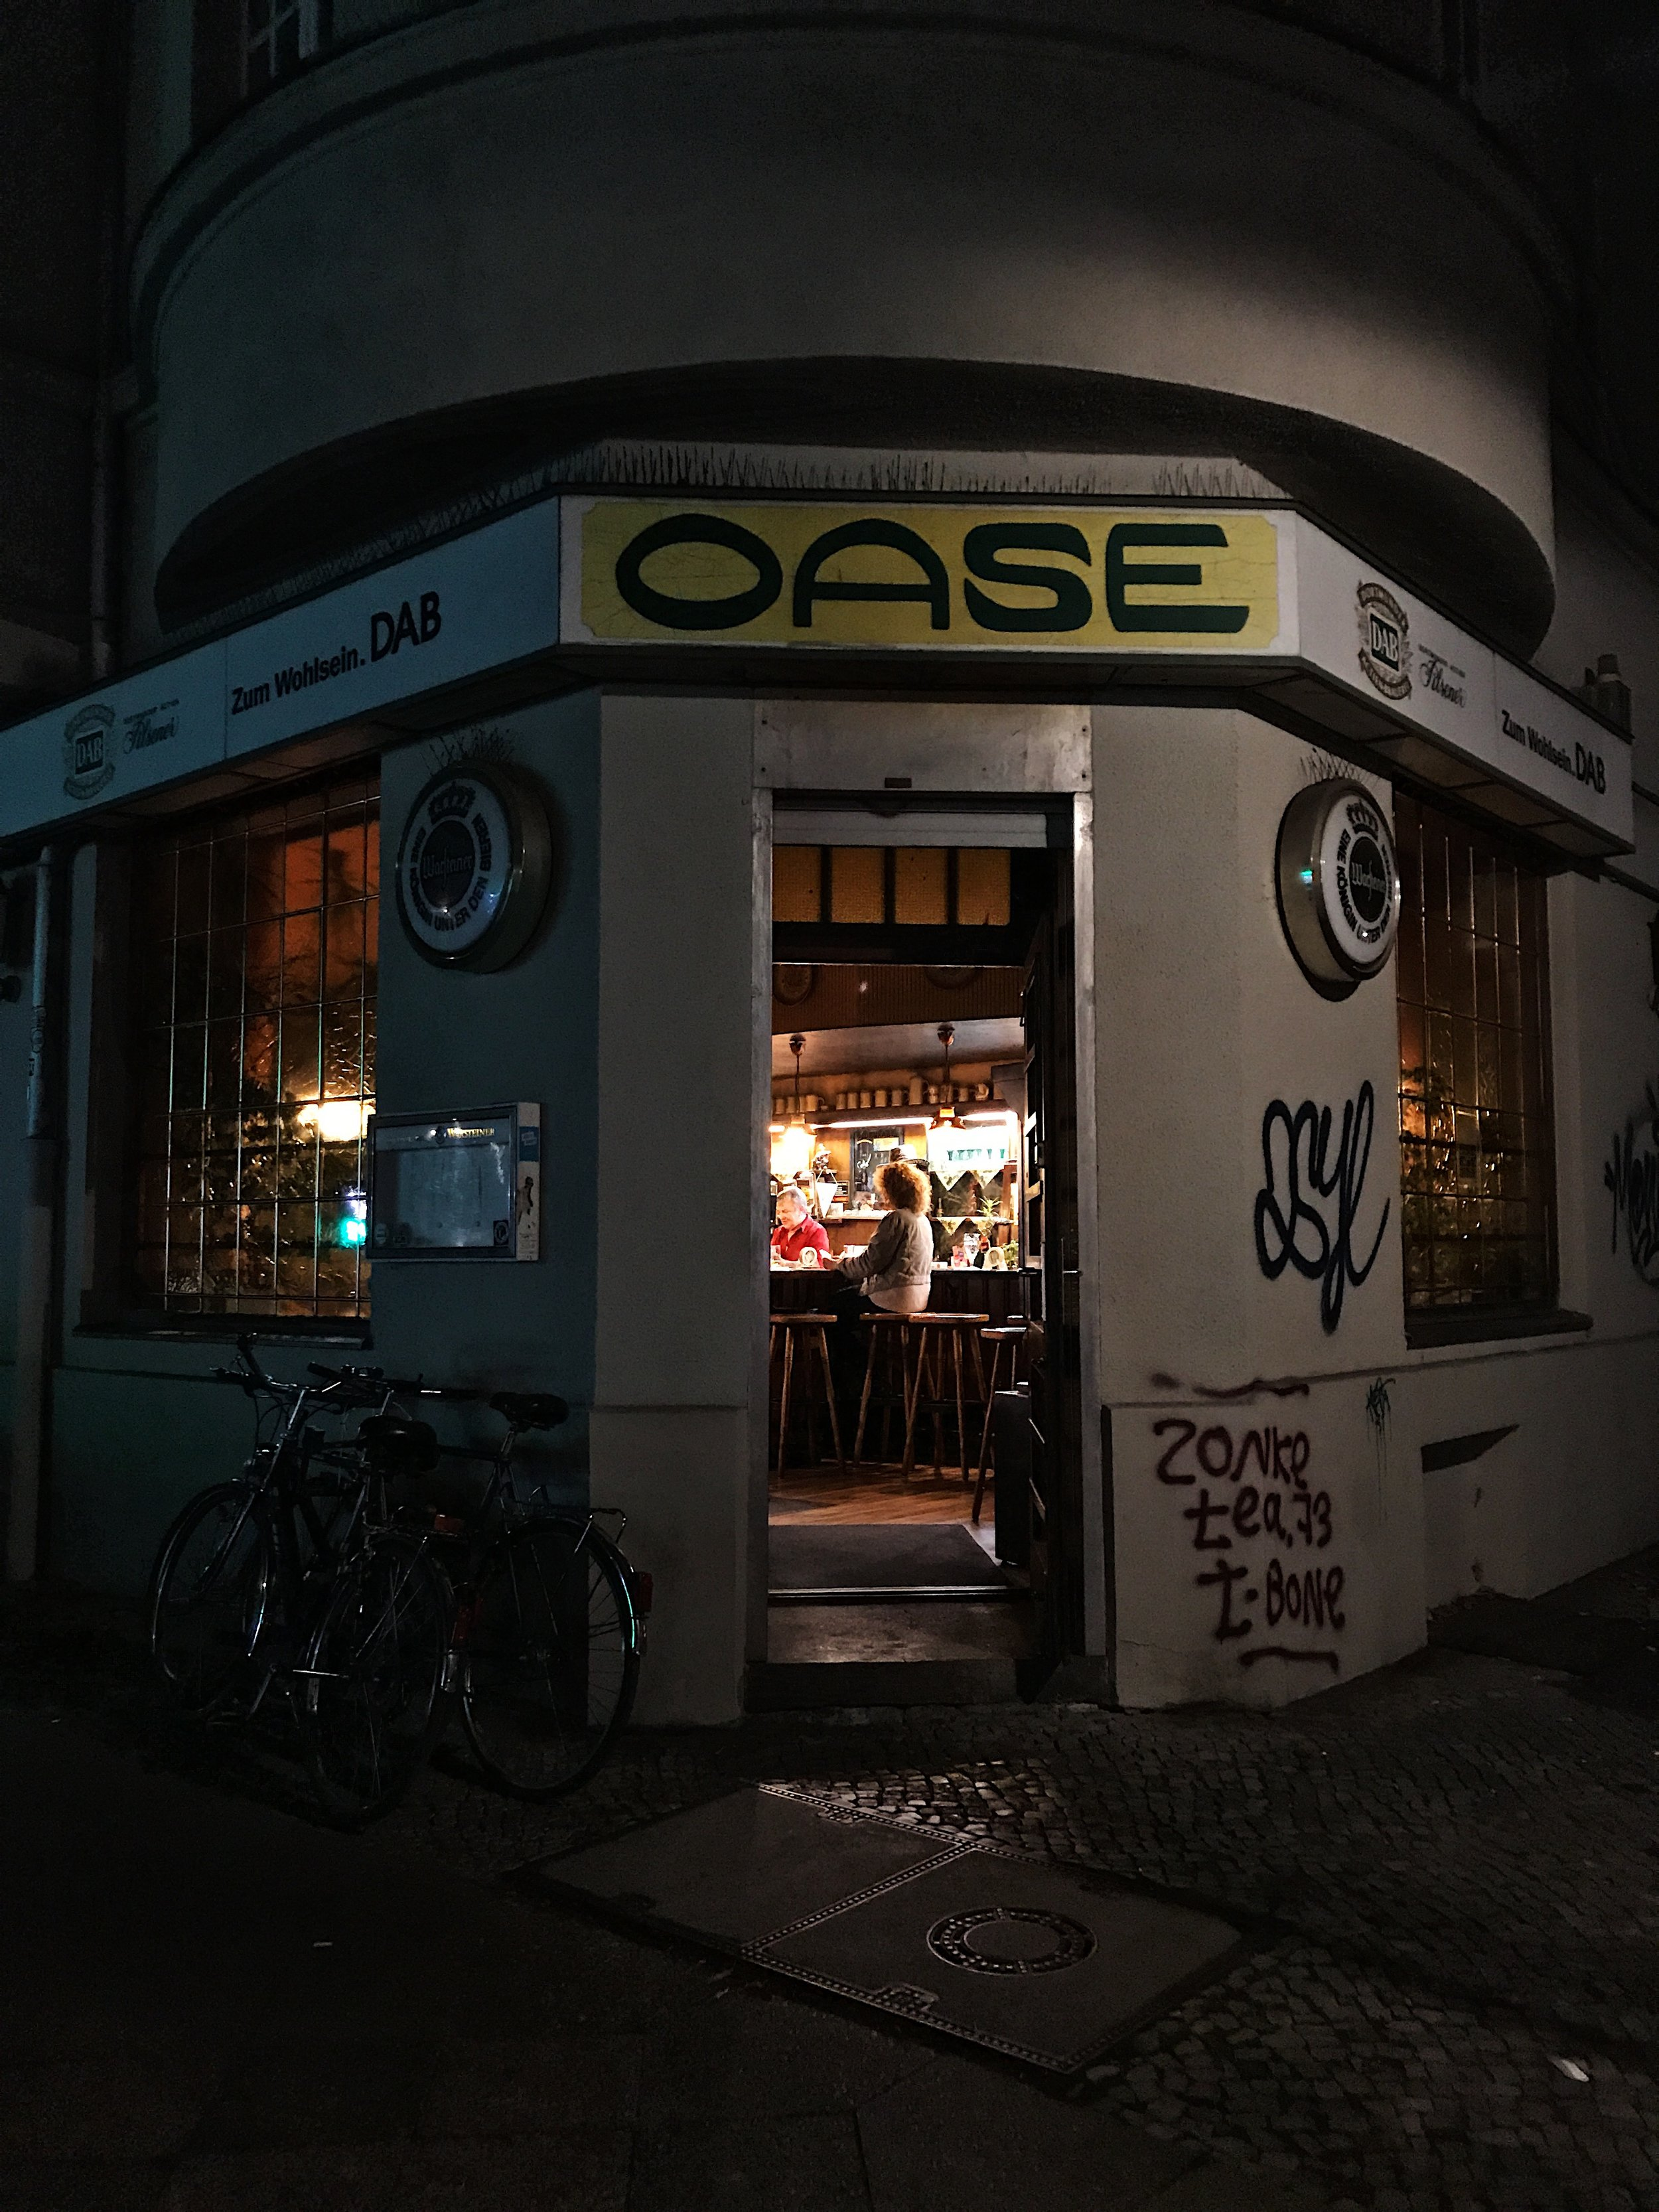 The very local bar I fell in love with (Gaststätte Oase)